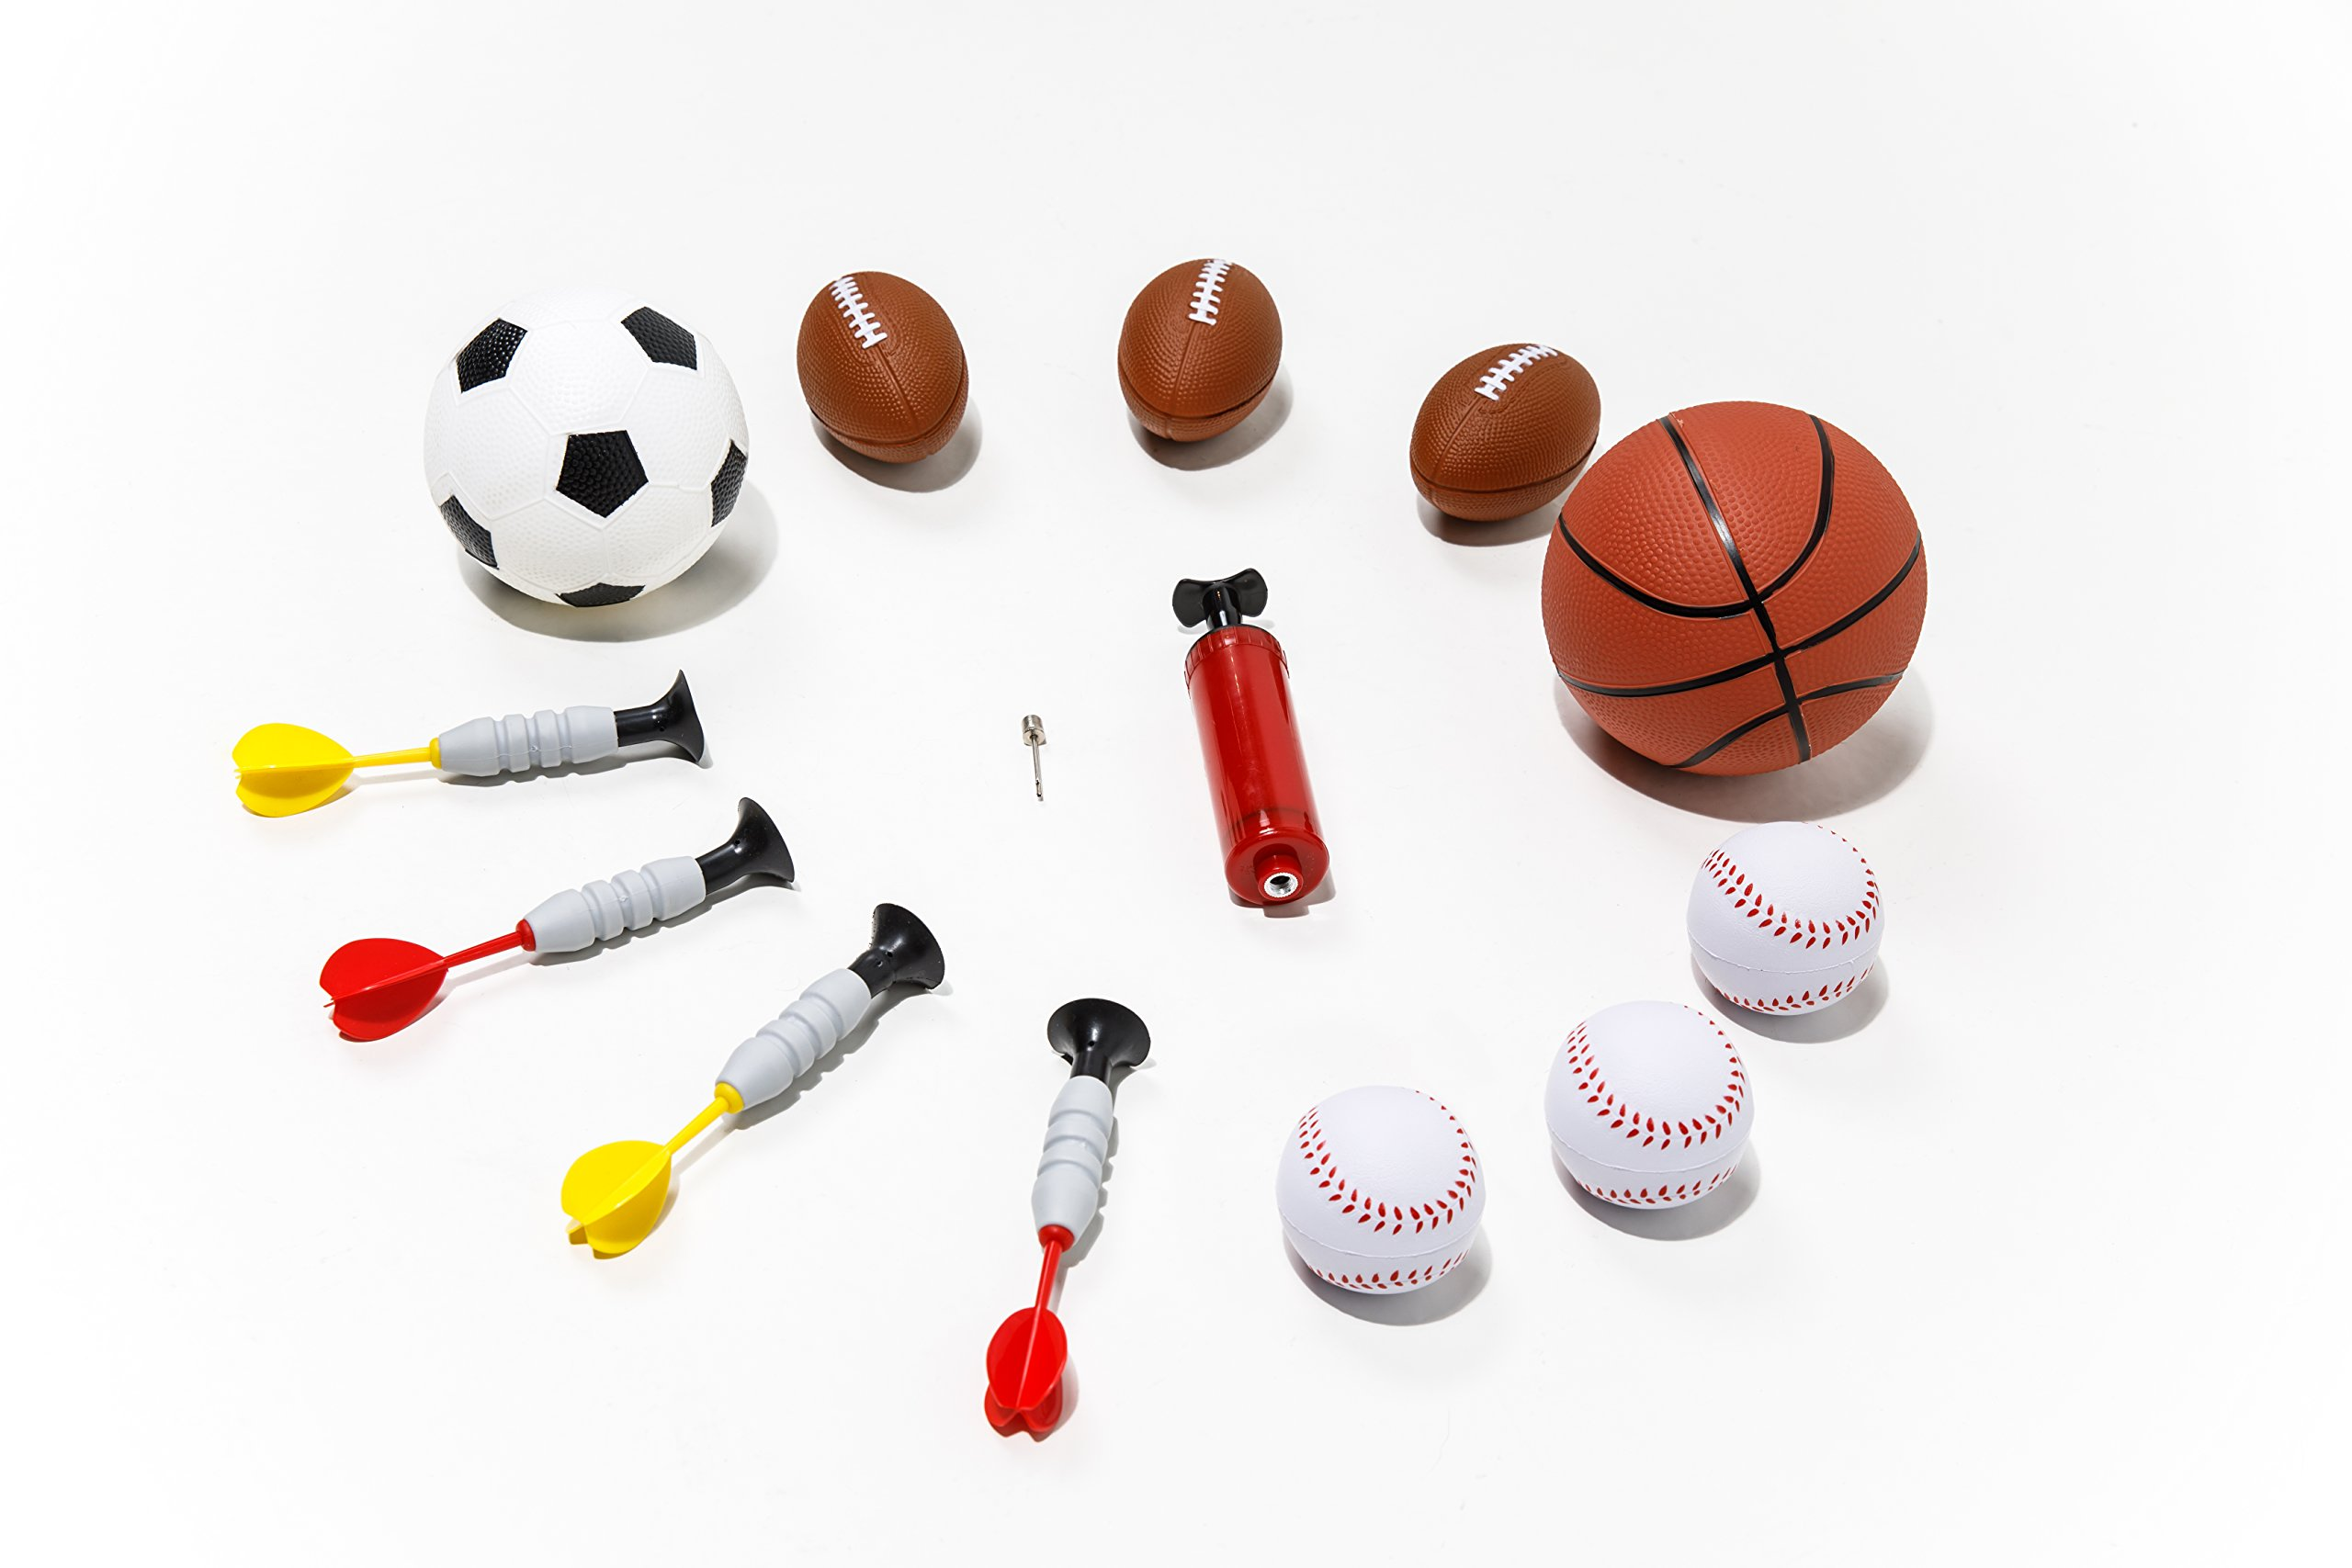 Sport Squad 5-in-1 Multi-Sport Kid's Game Set – Features Baseball, Basketball, Football, Soccer, Darts – Great for Indoor and Outdoor Play by Sport Squad (Image #4)